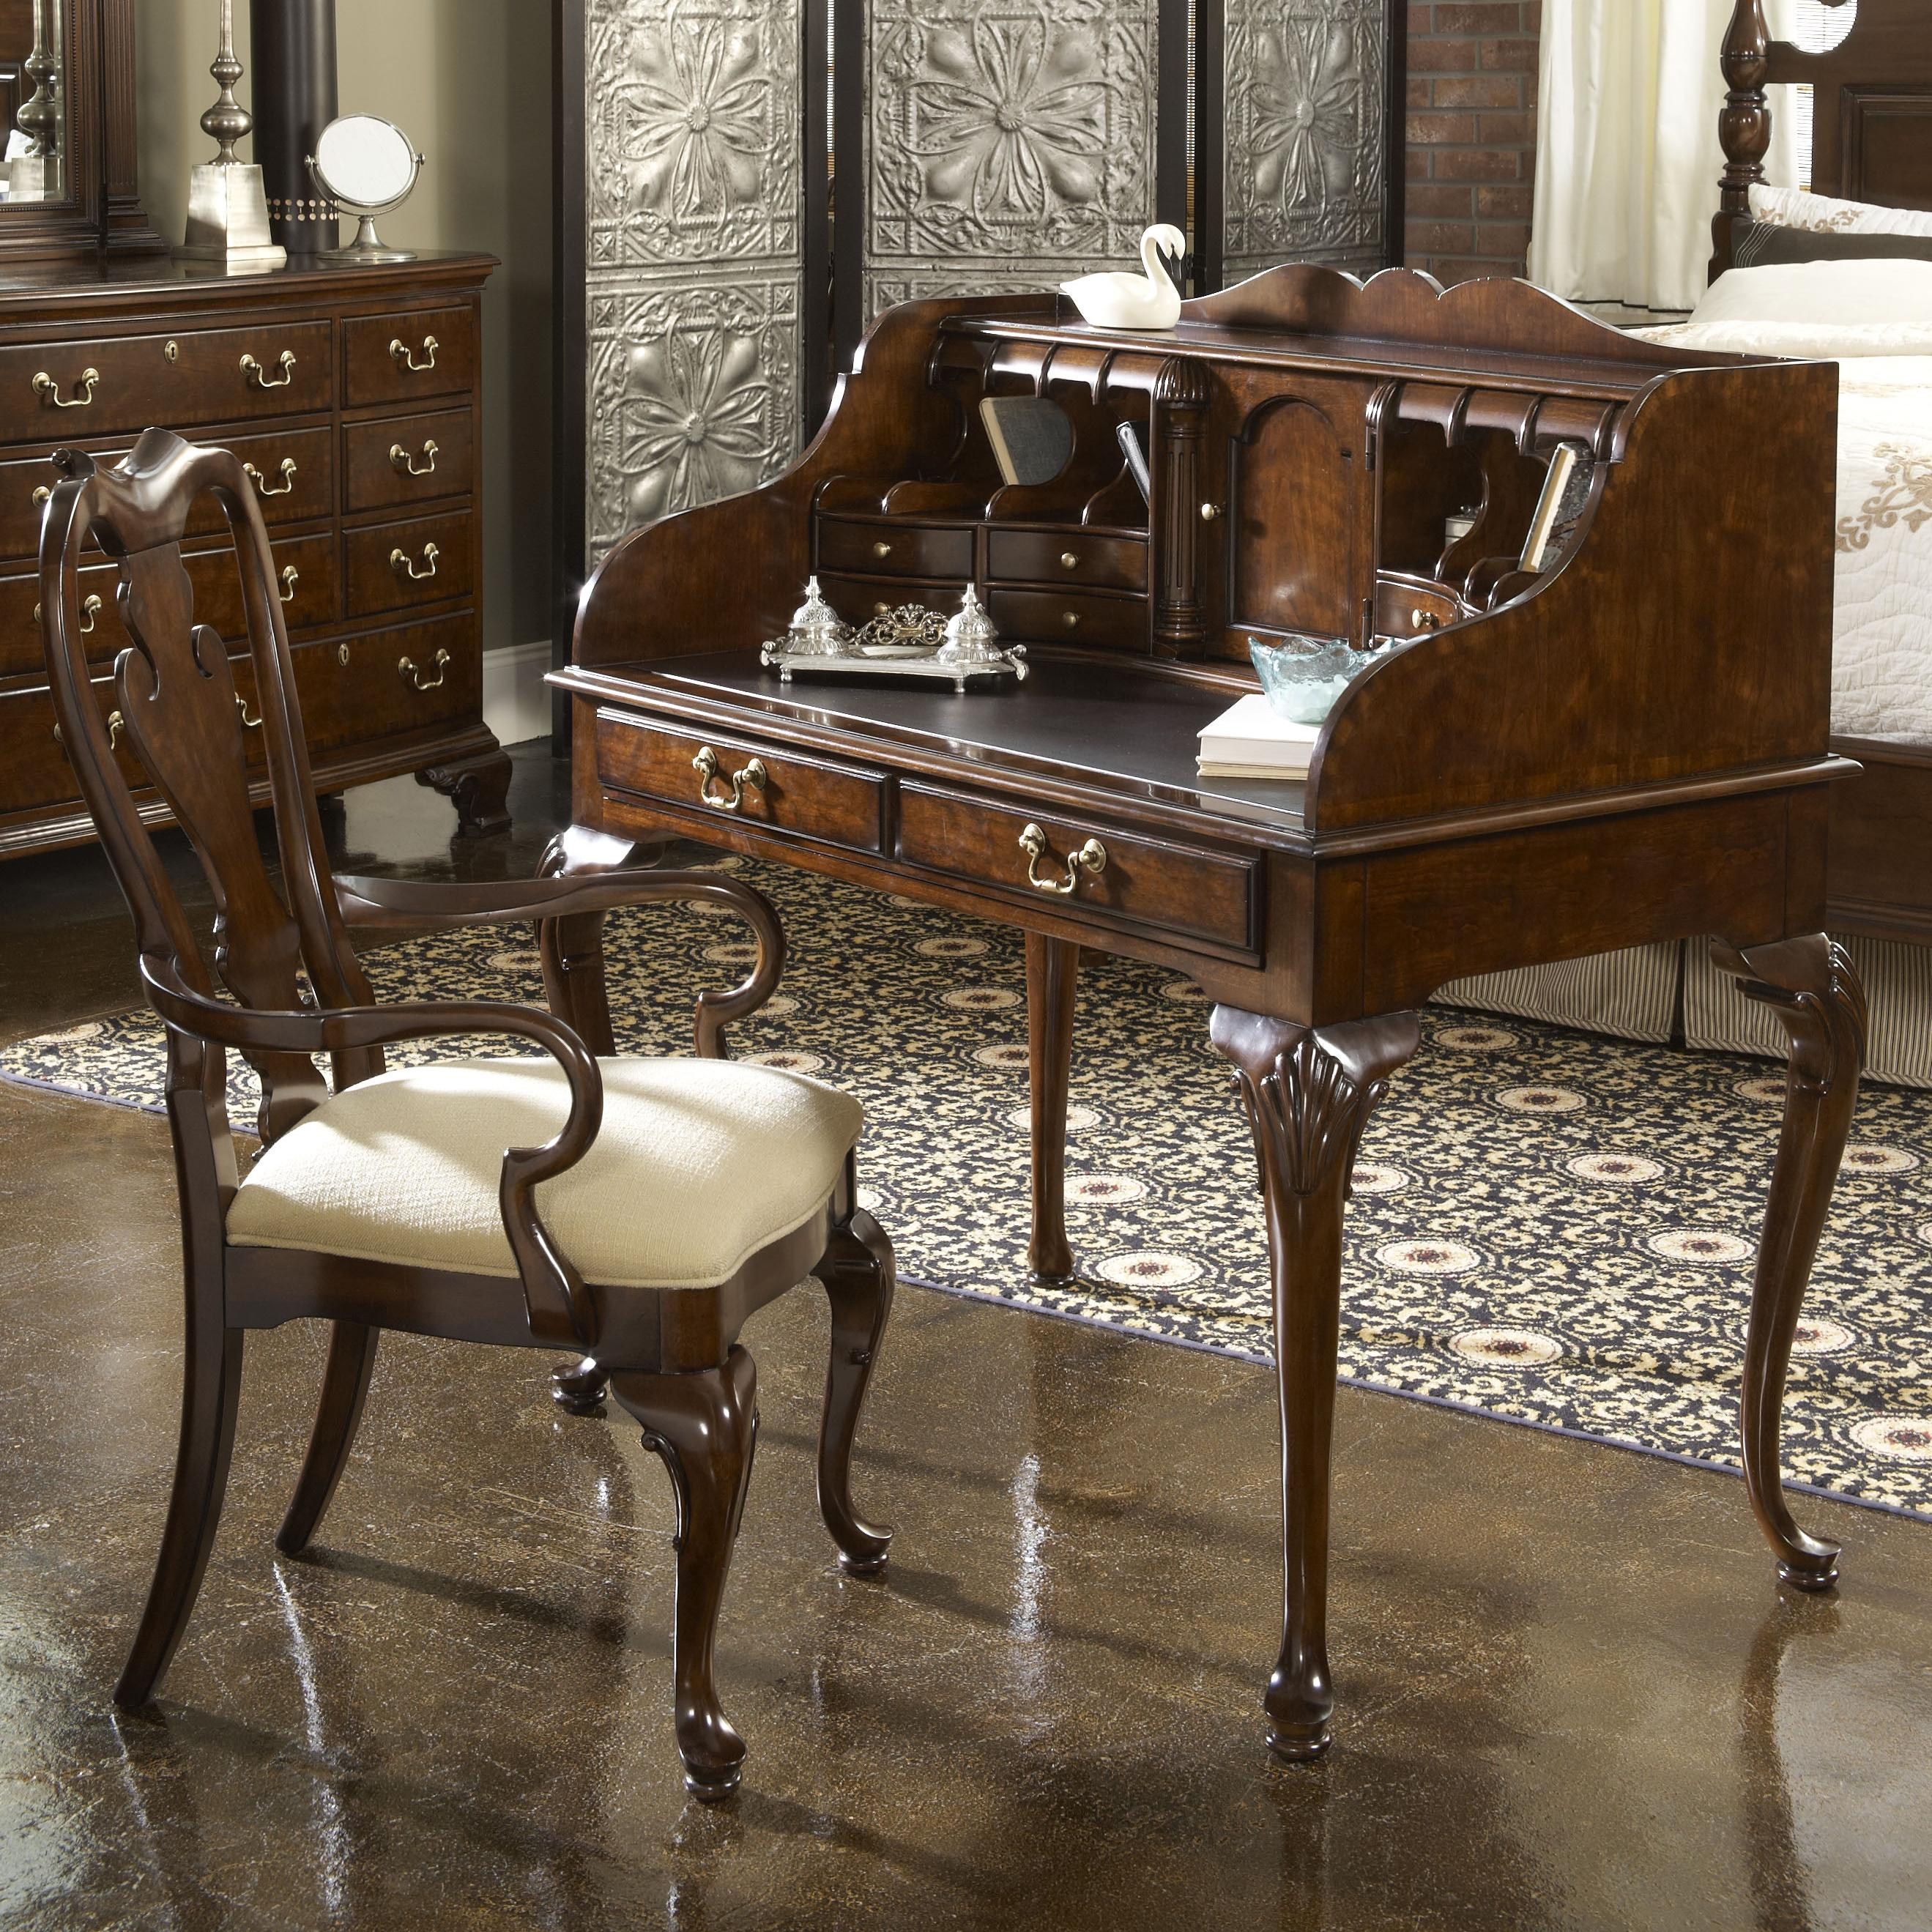 new bedford ladies desk with tooled leather top by fine furniture